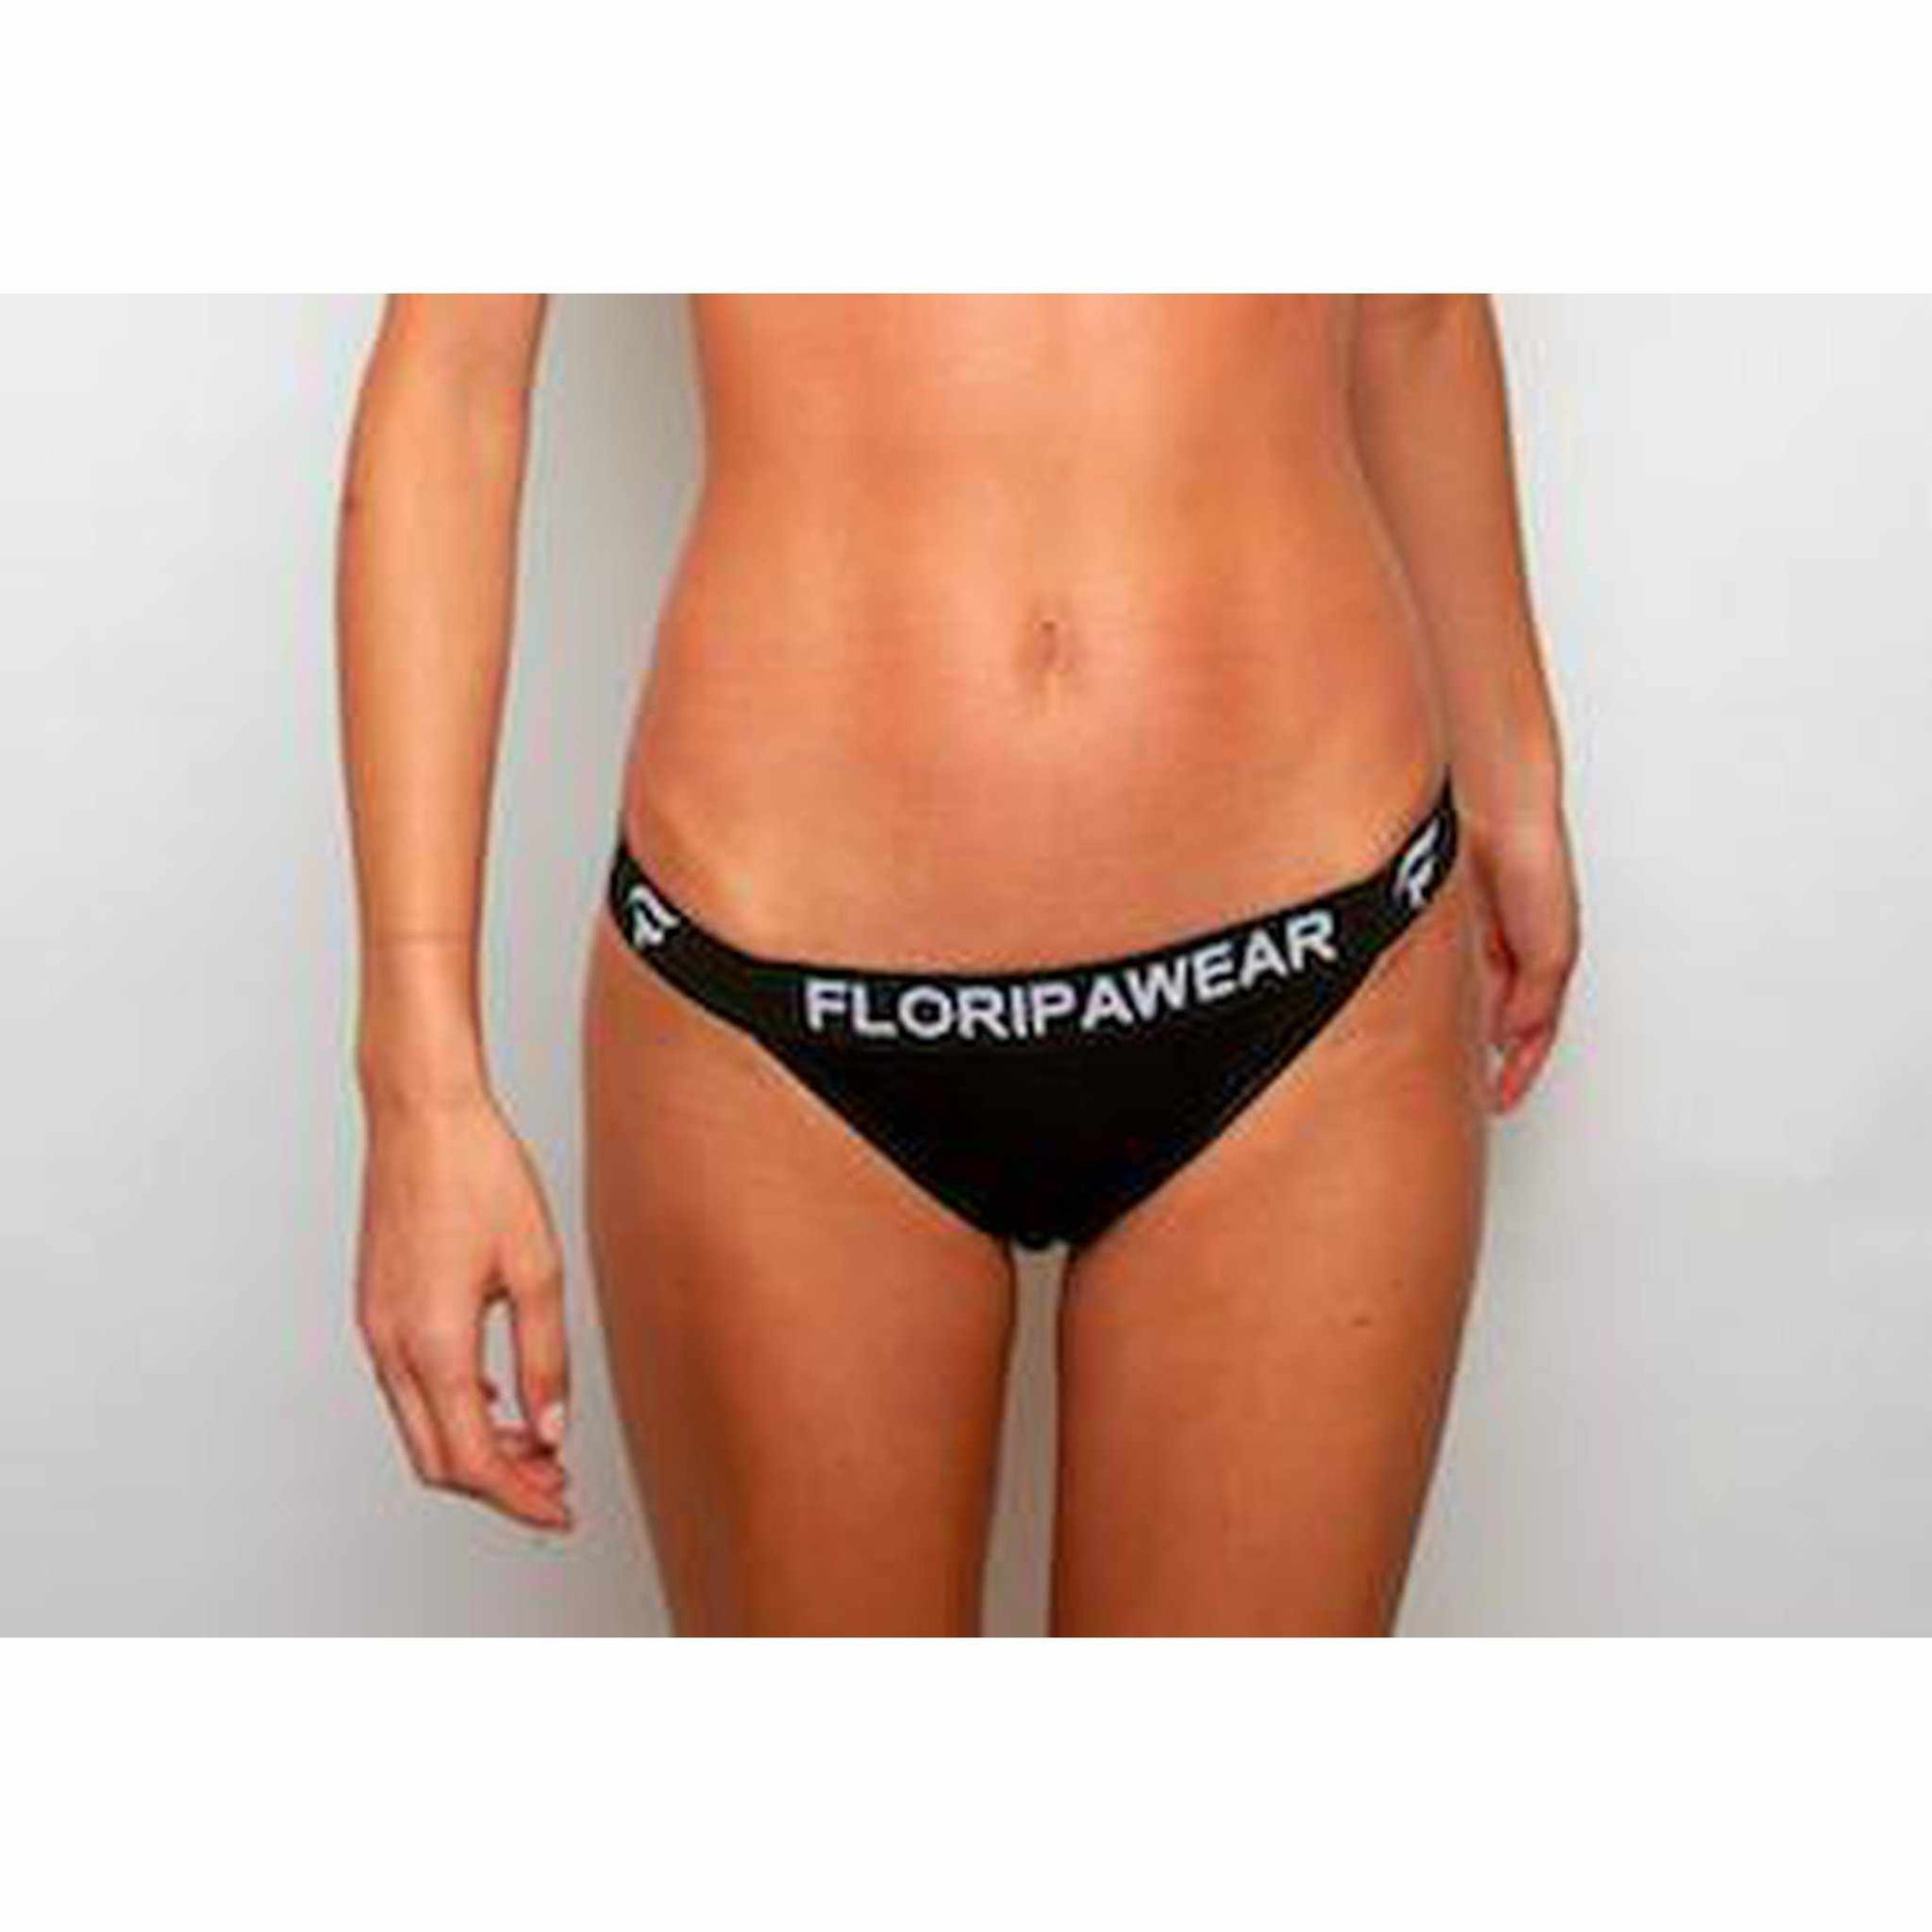 Ethical Underwear UK Noite Black Thong - floripawear